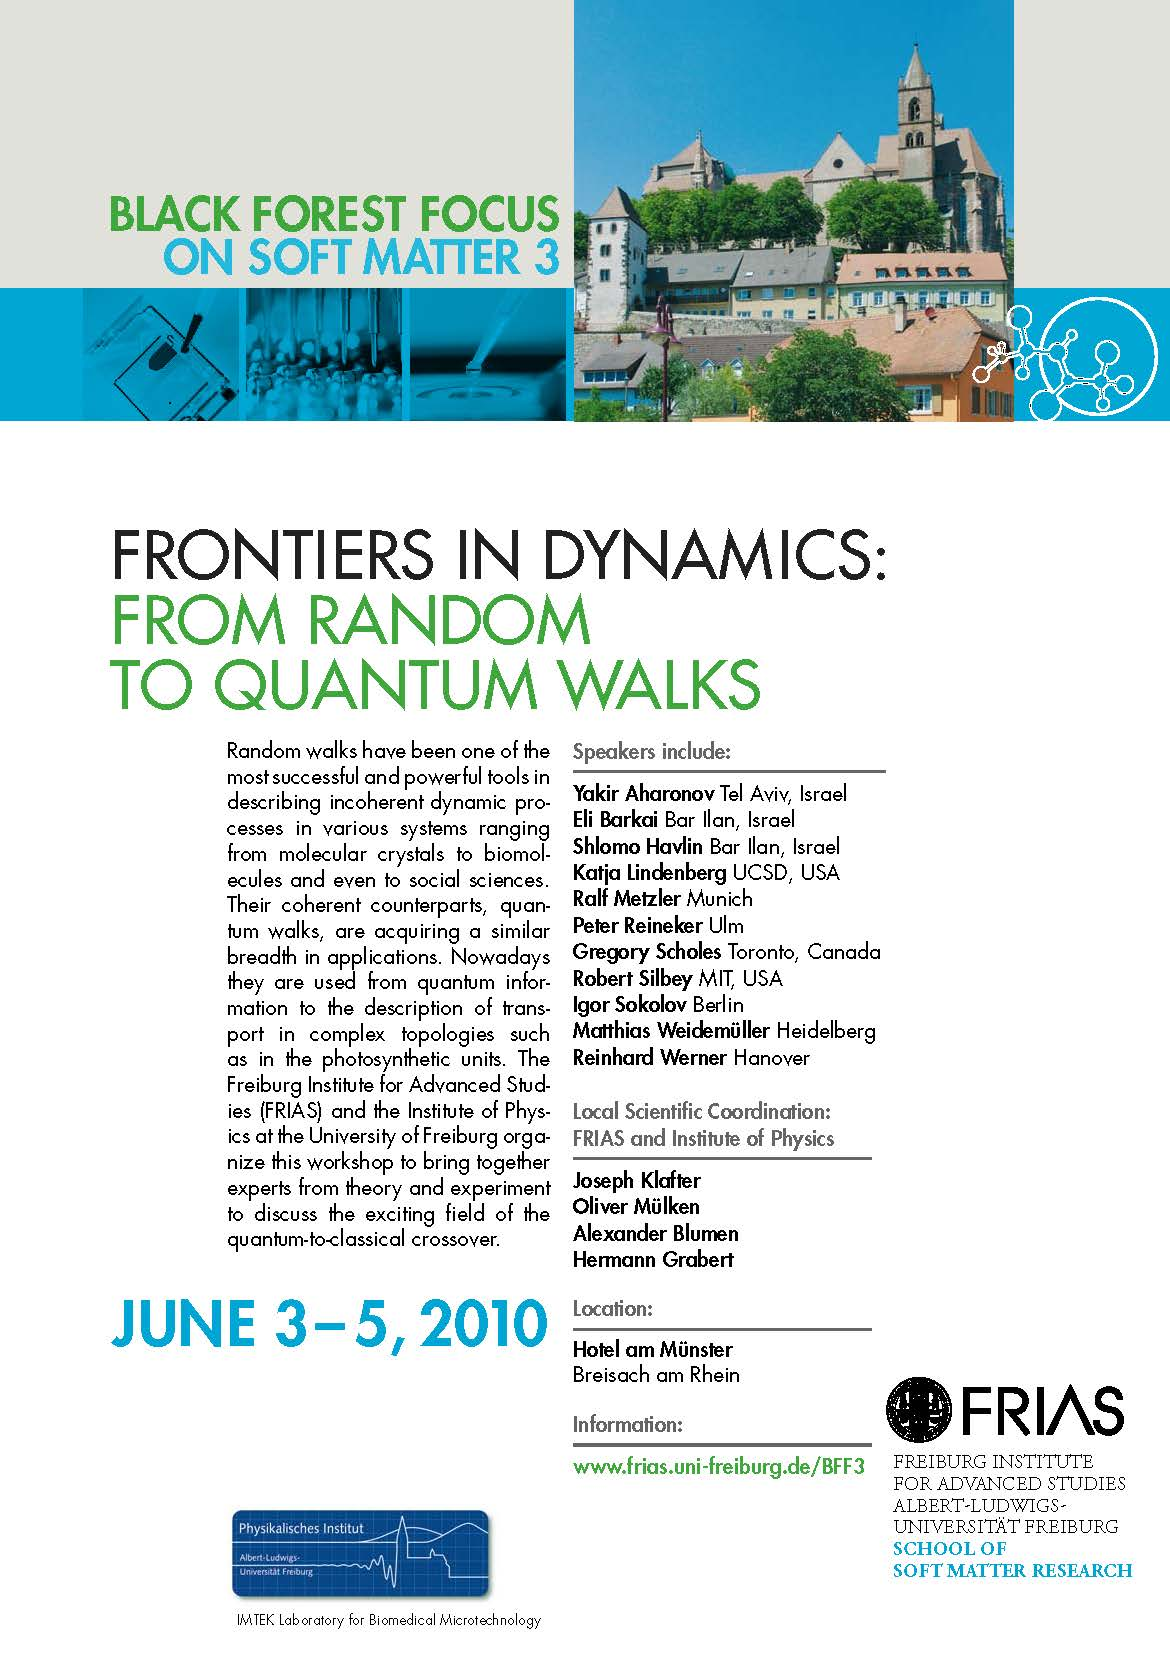 """Black Forest Focus on Soft Matter 3: """"Frontiers in Dynamics – from Random to Quantum Walks"""""""